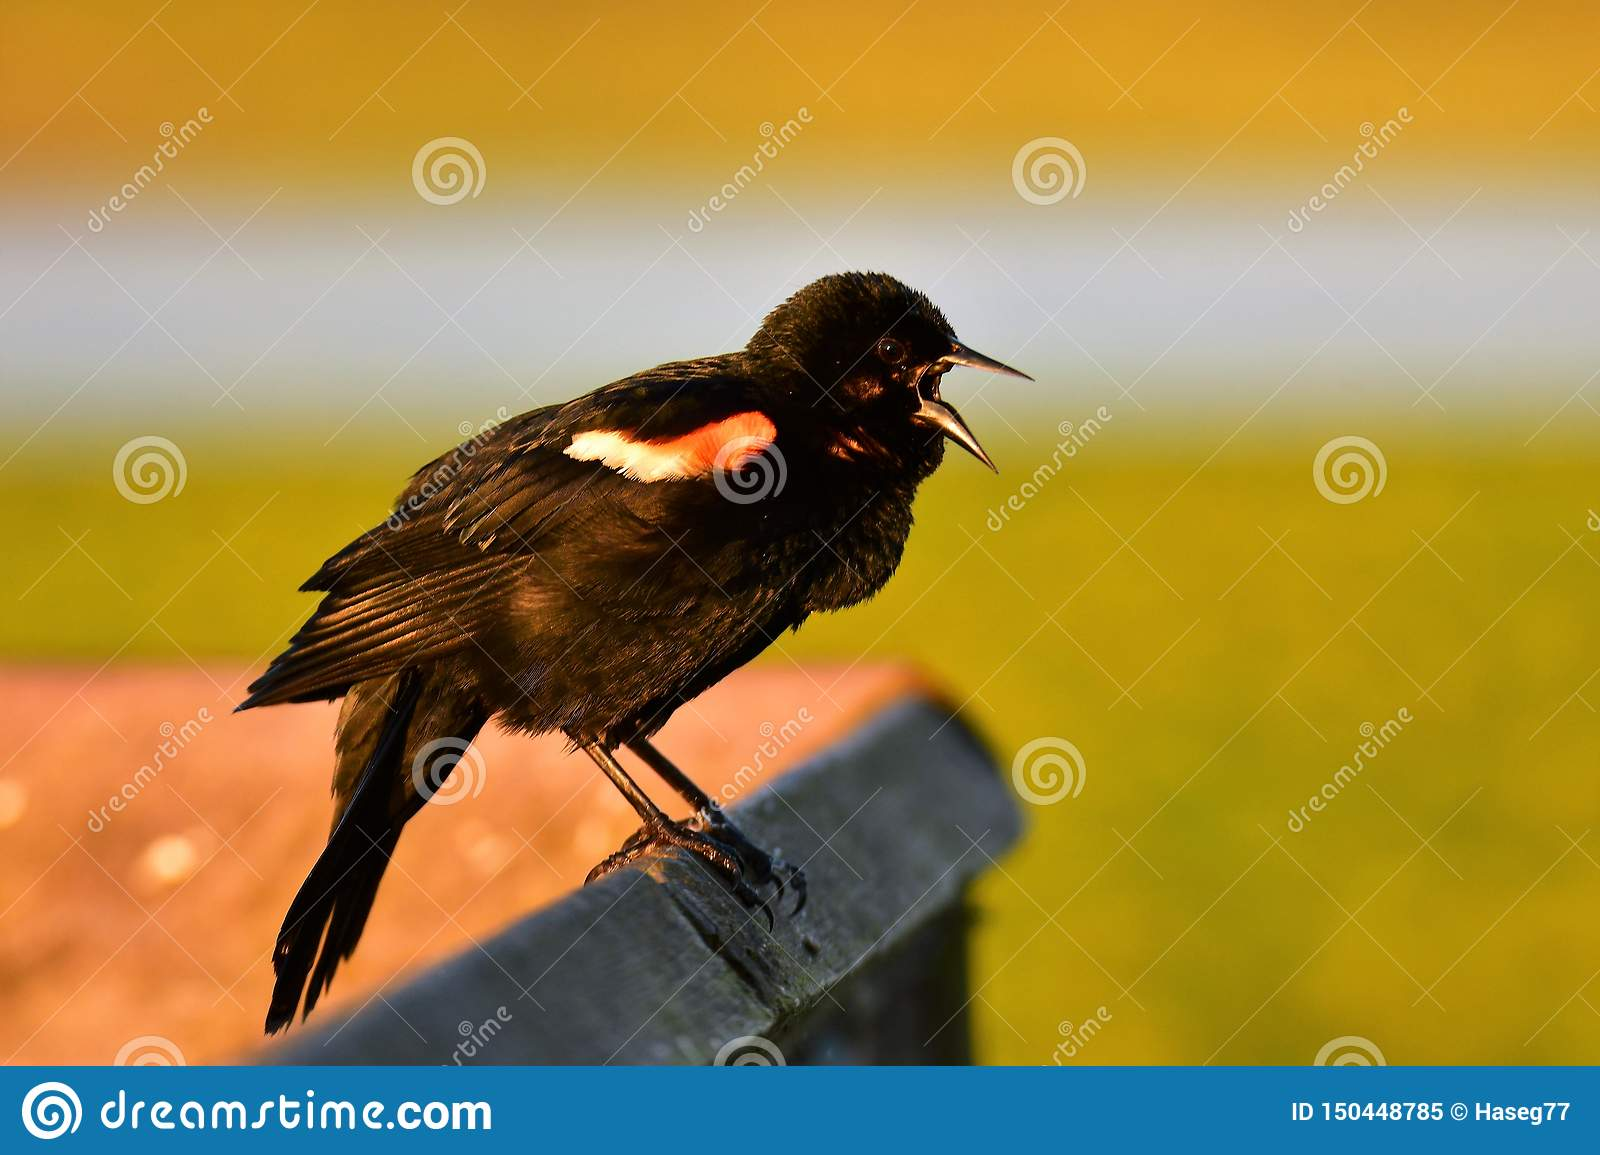 A lively Red-winged blackbird singing from early morning to communicate with his fellows.